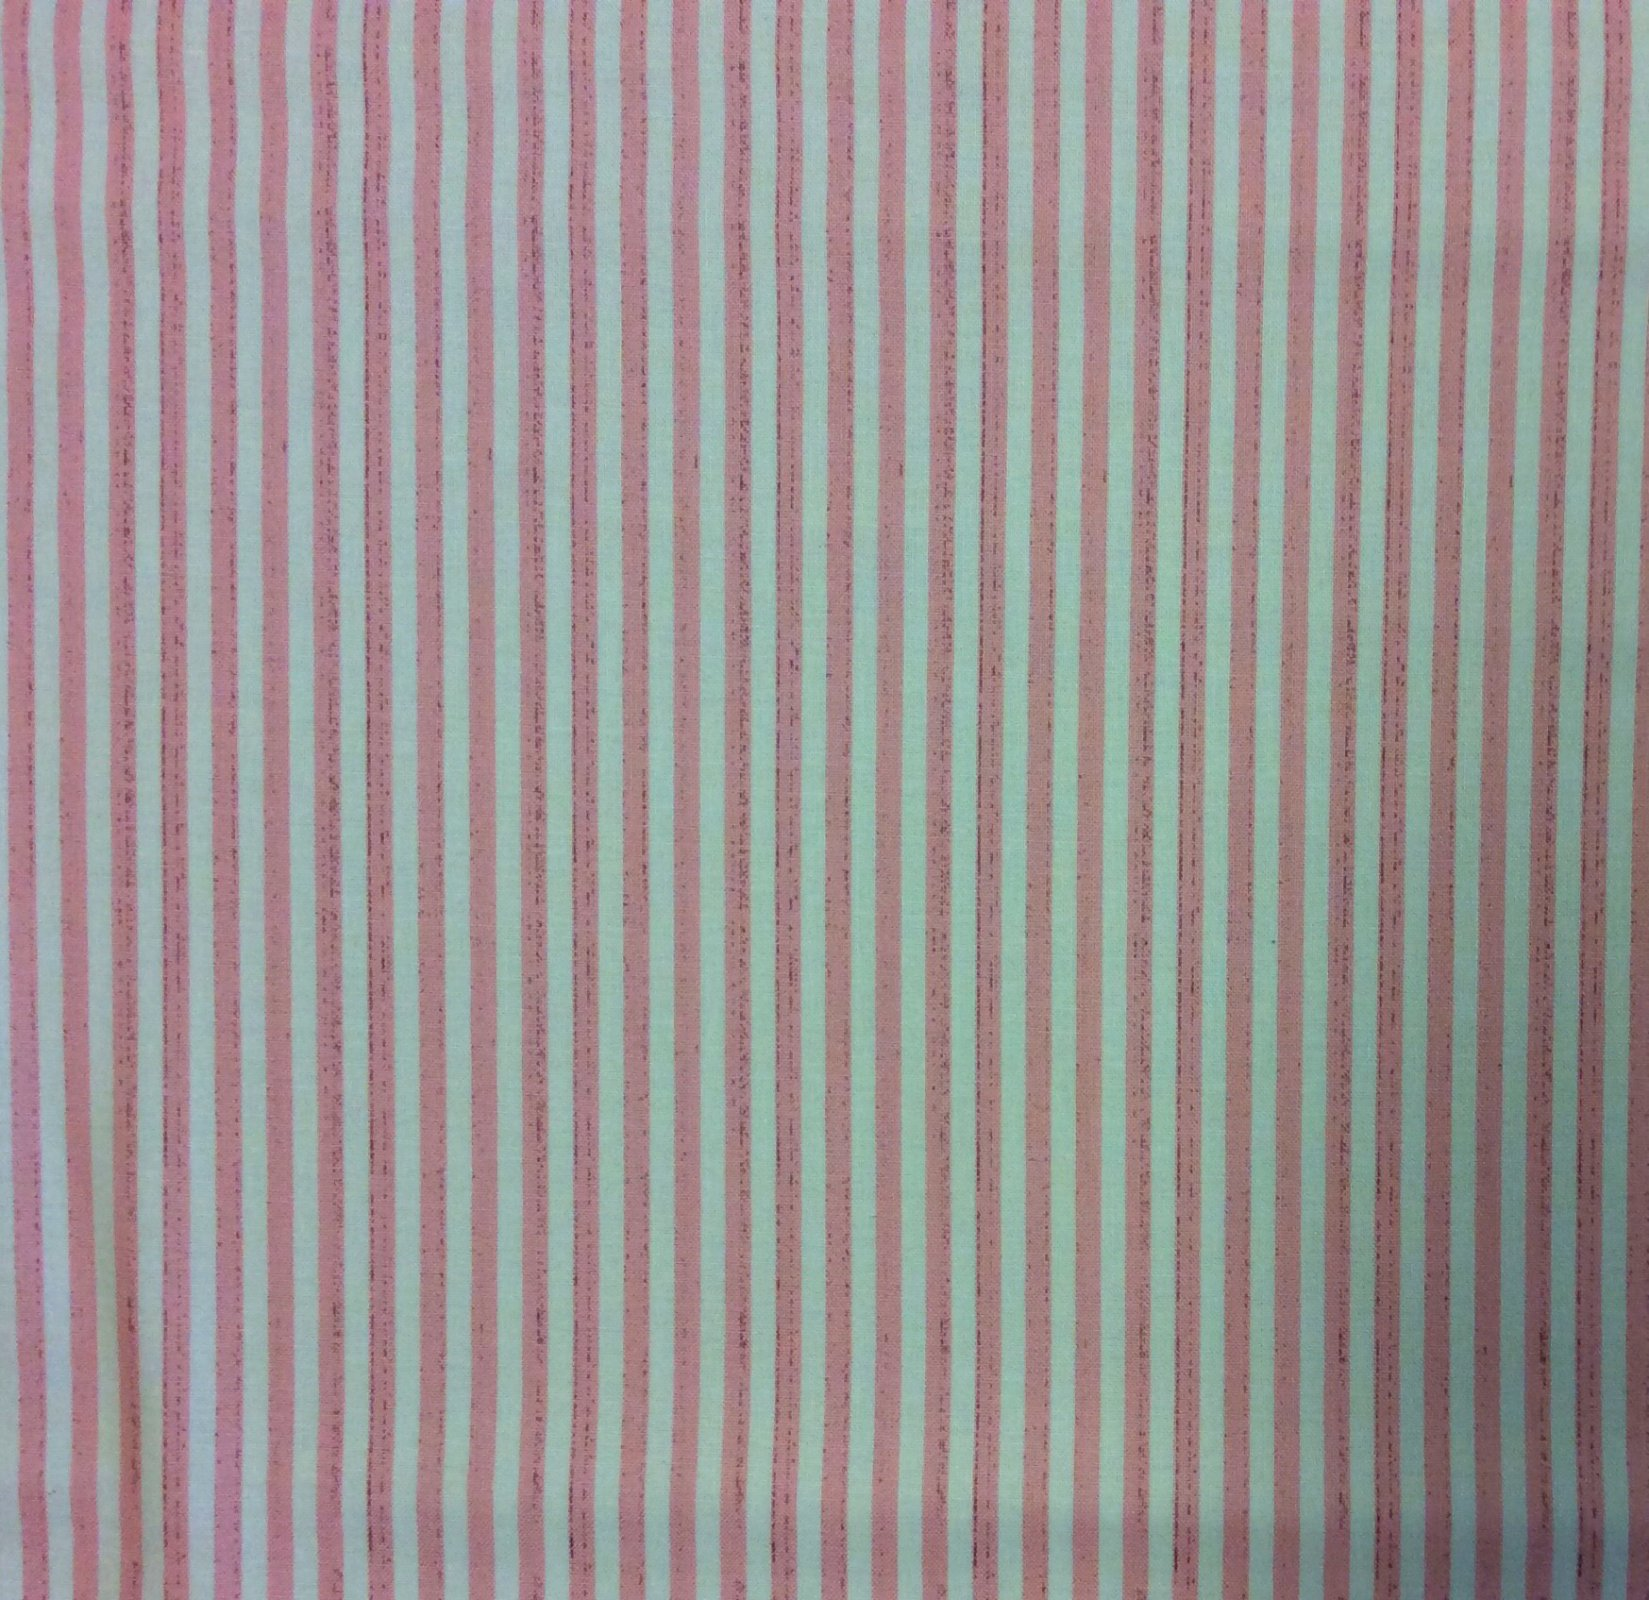 NM08. Light Pink and Cream Distressed Stripe Cotton Quilting Fabric